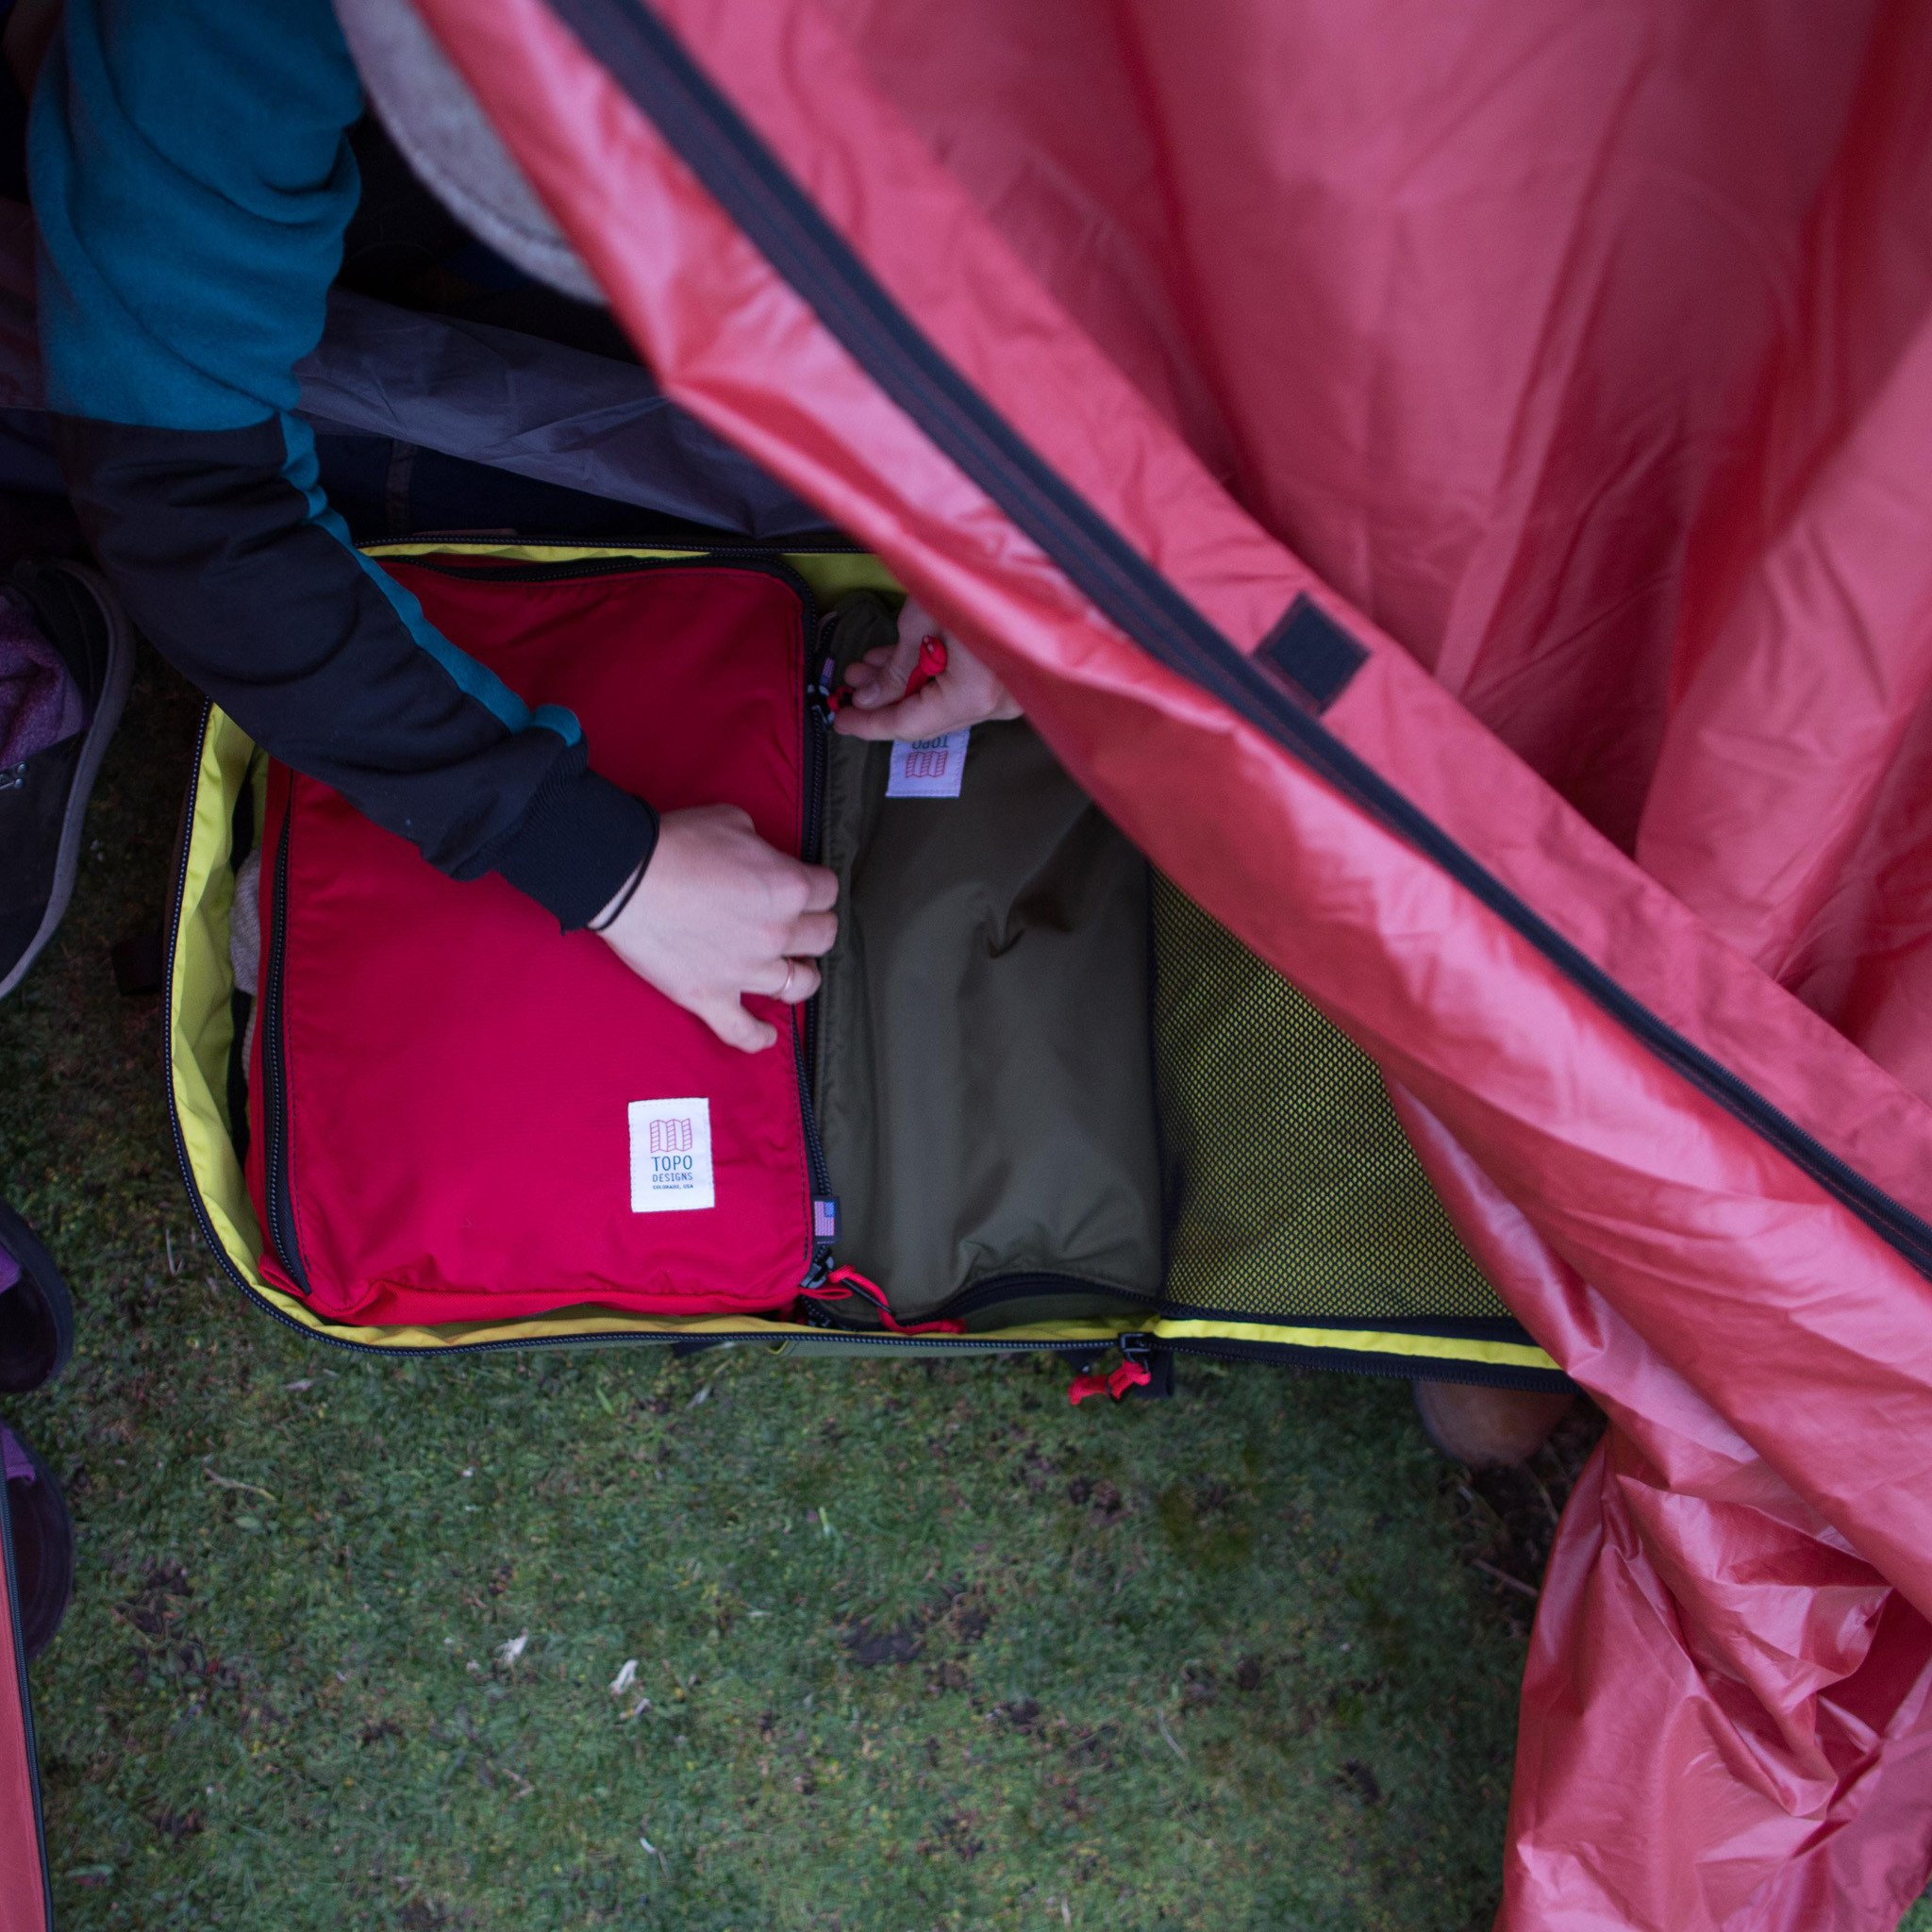 Topo Designs Pack Bag, for easy packing